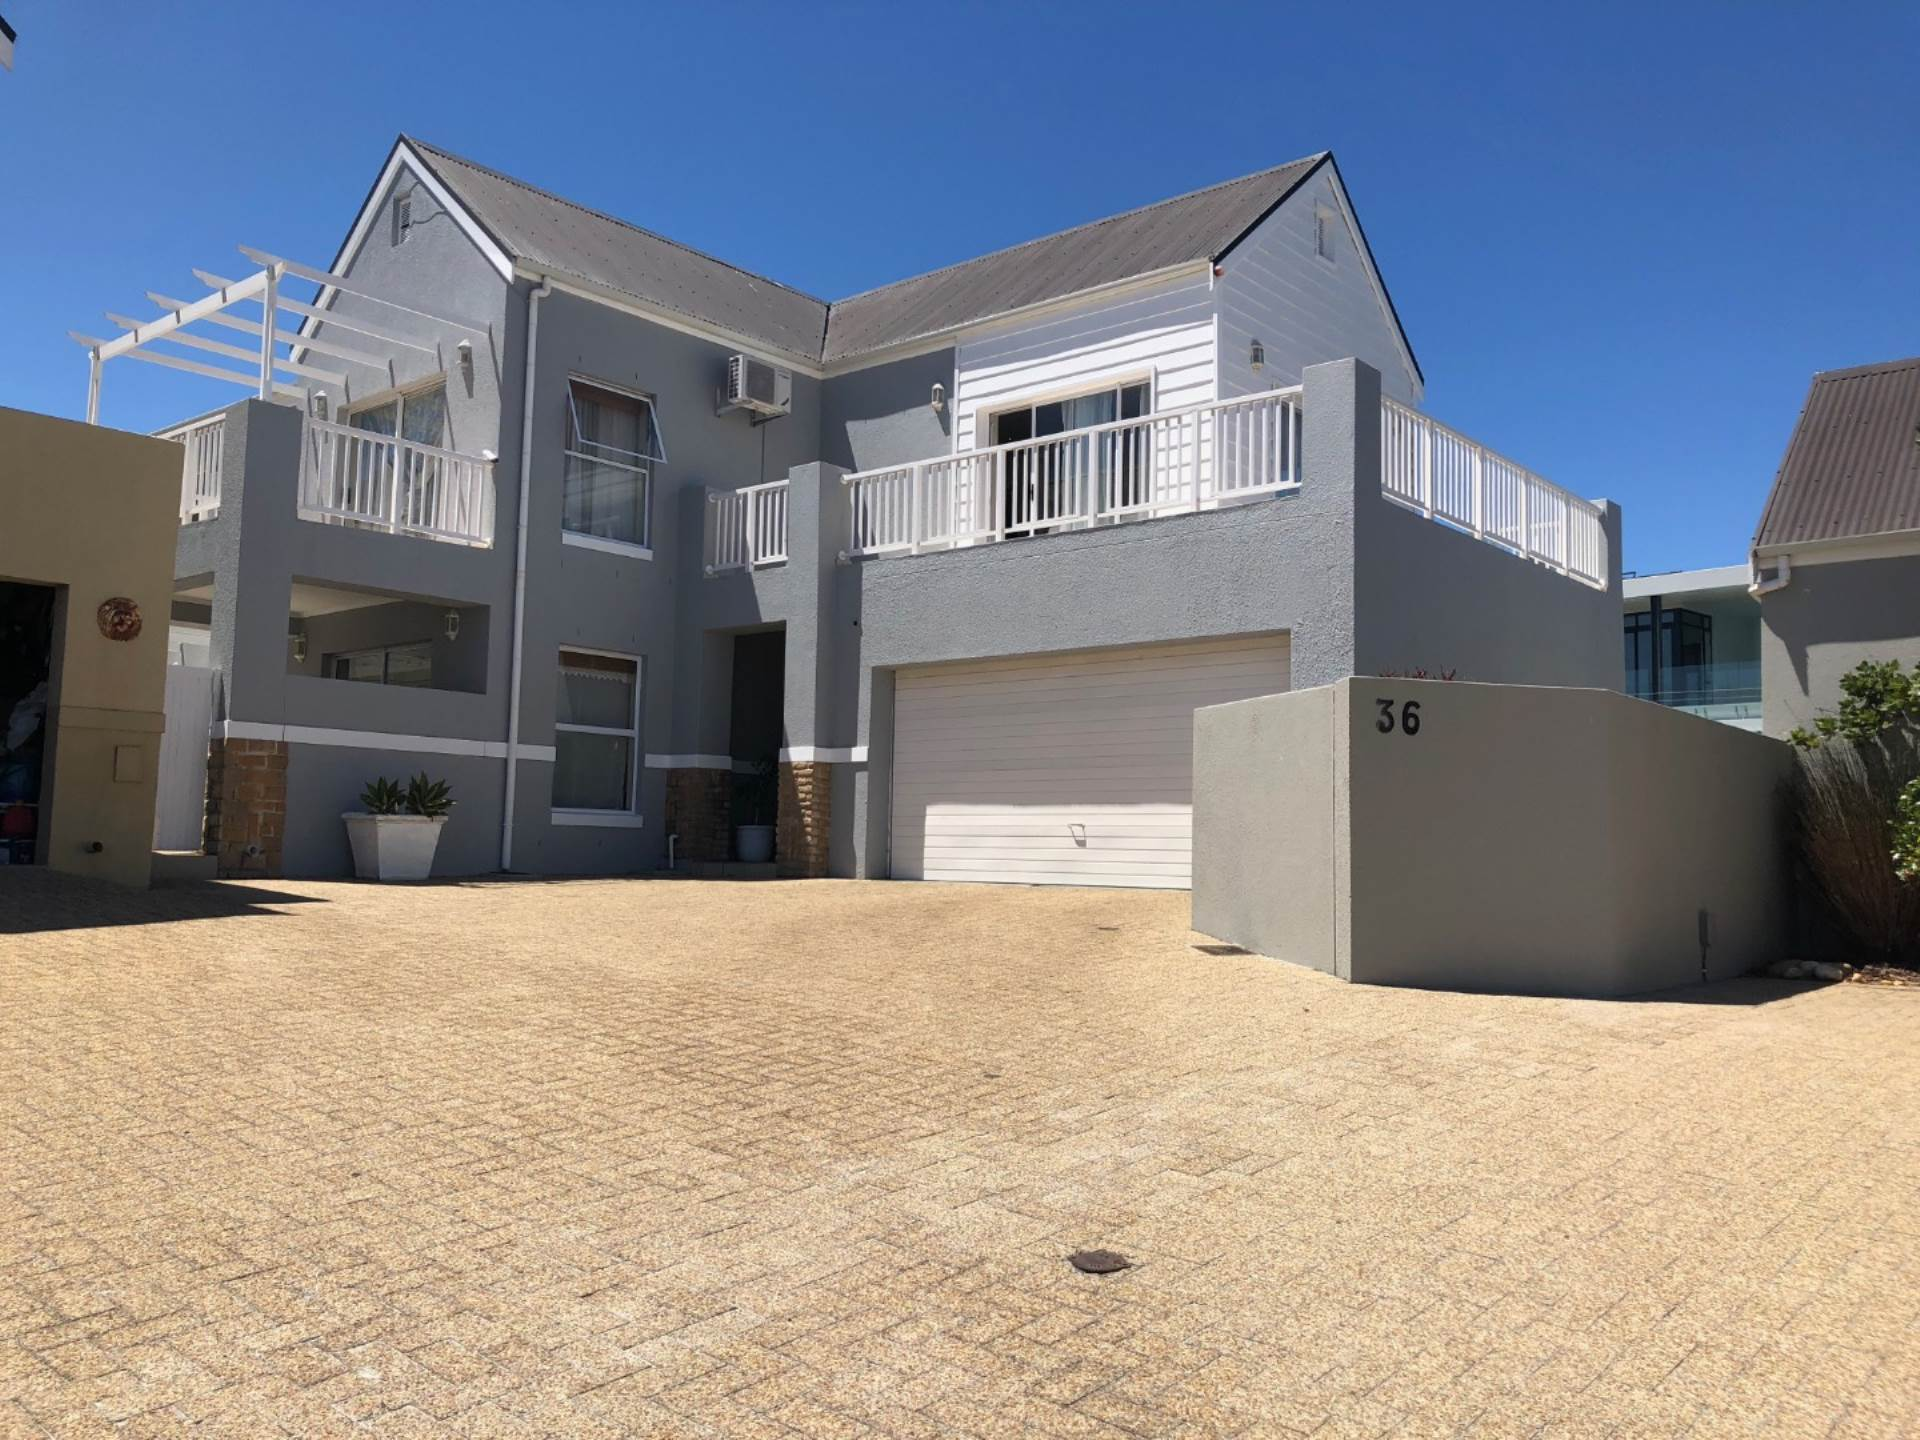 Blaauwberg, Bloubergstrand Property  | Houses For Sale Bloubergstrand, BLOUBERGSTRAND, House 3 bedrooms property for sale Price:4,350,000